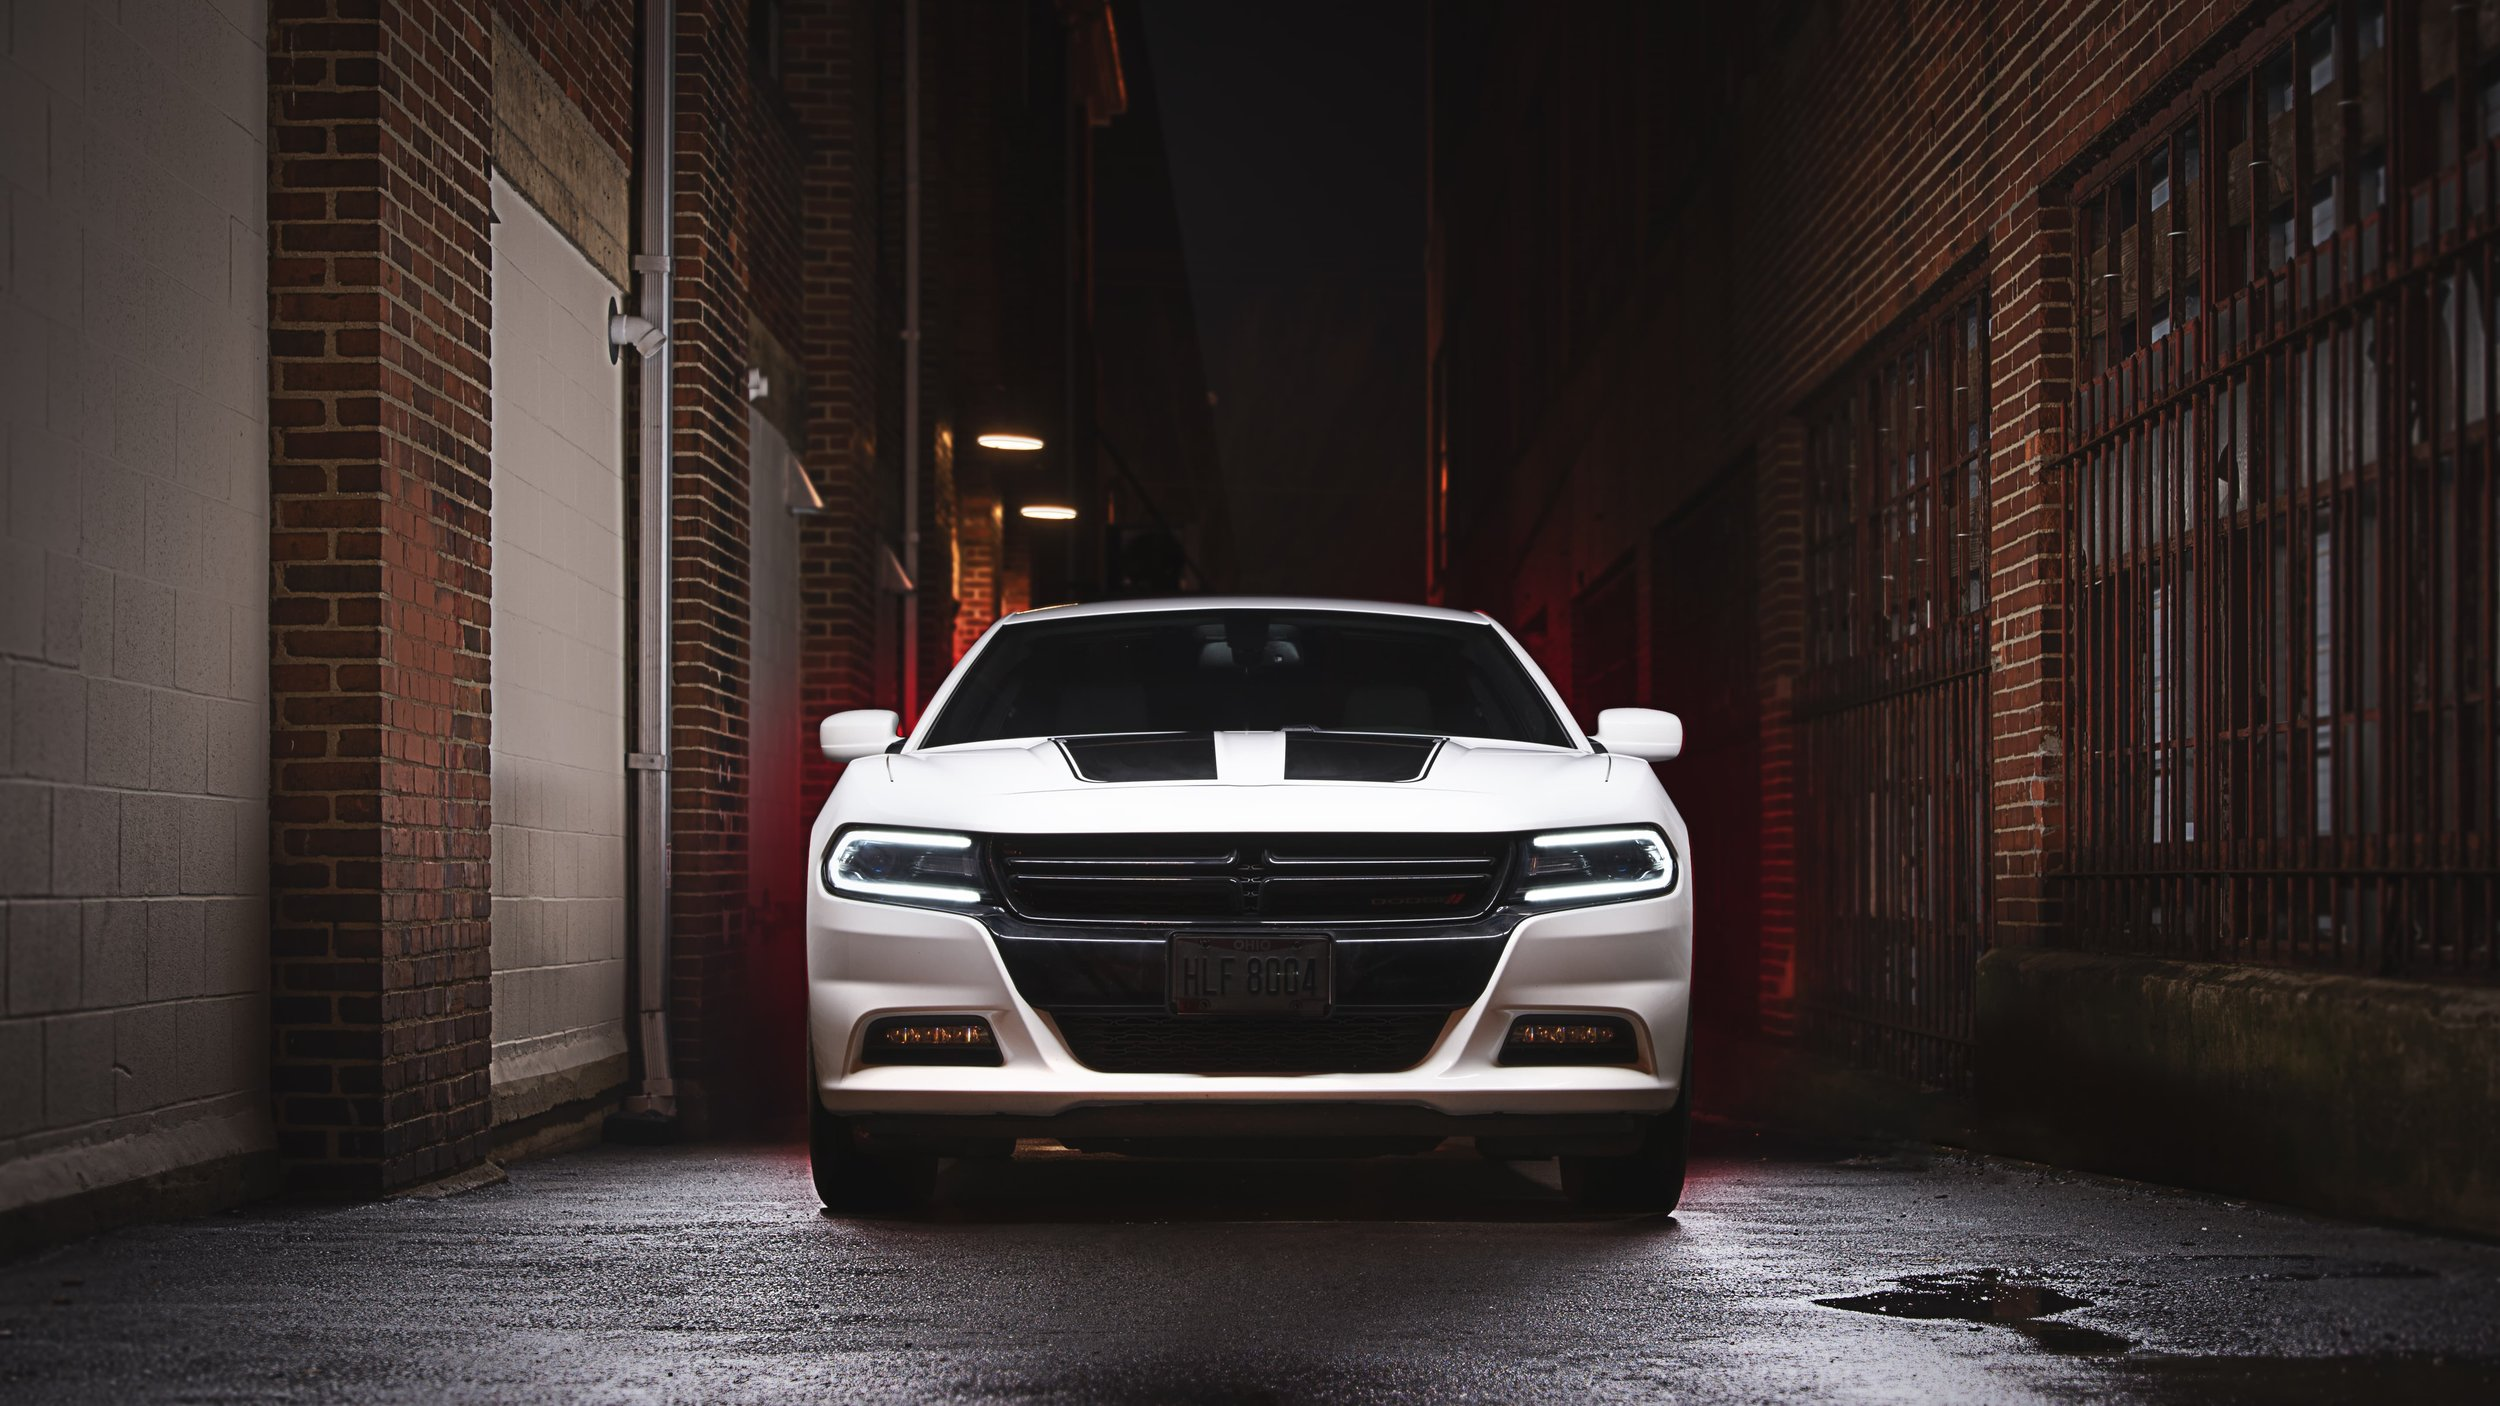 Charger_Dtn_Sgfld_2-4_0075.jpg